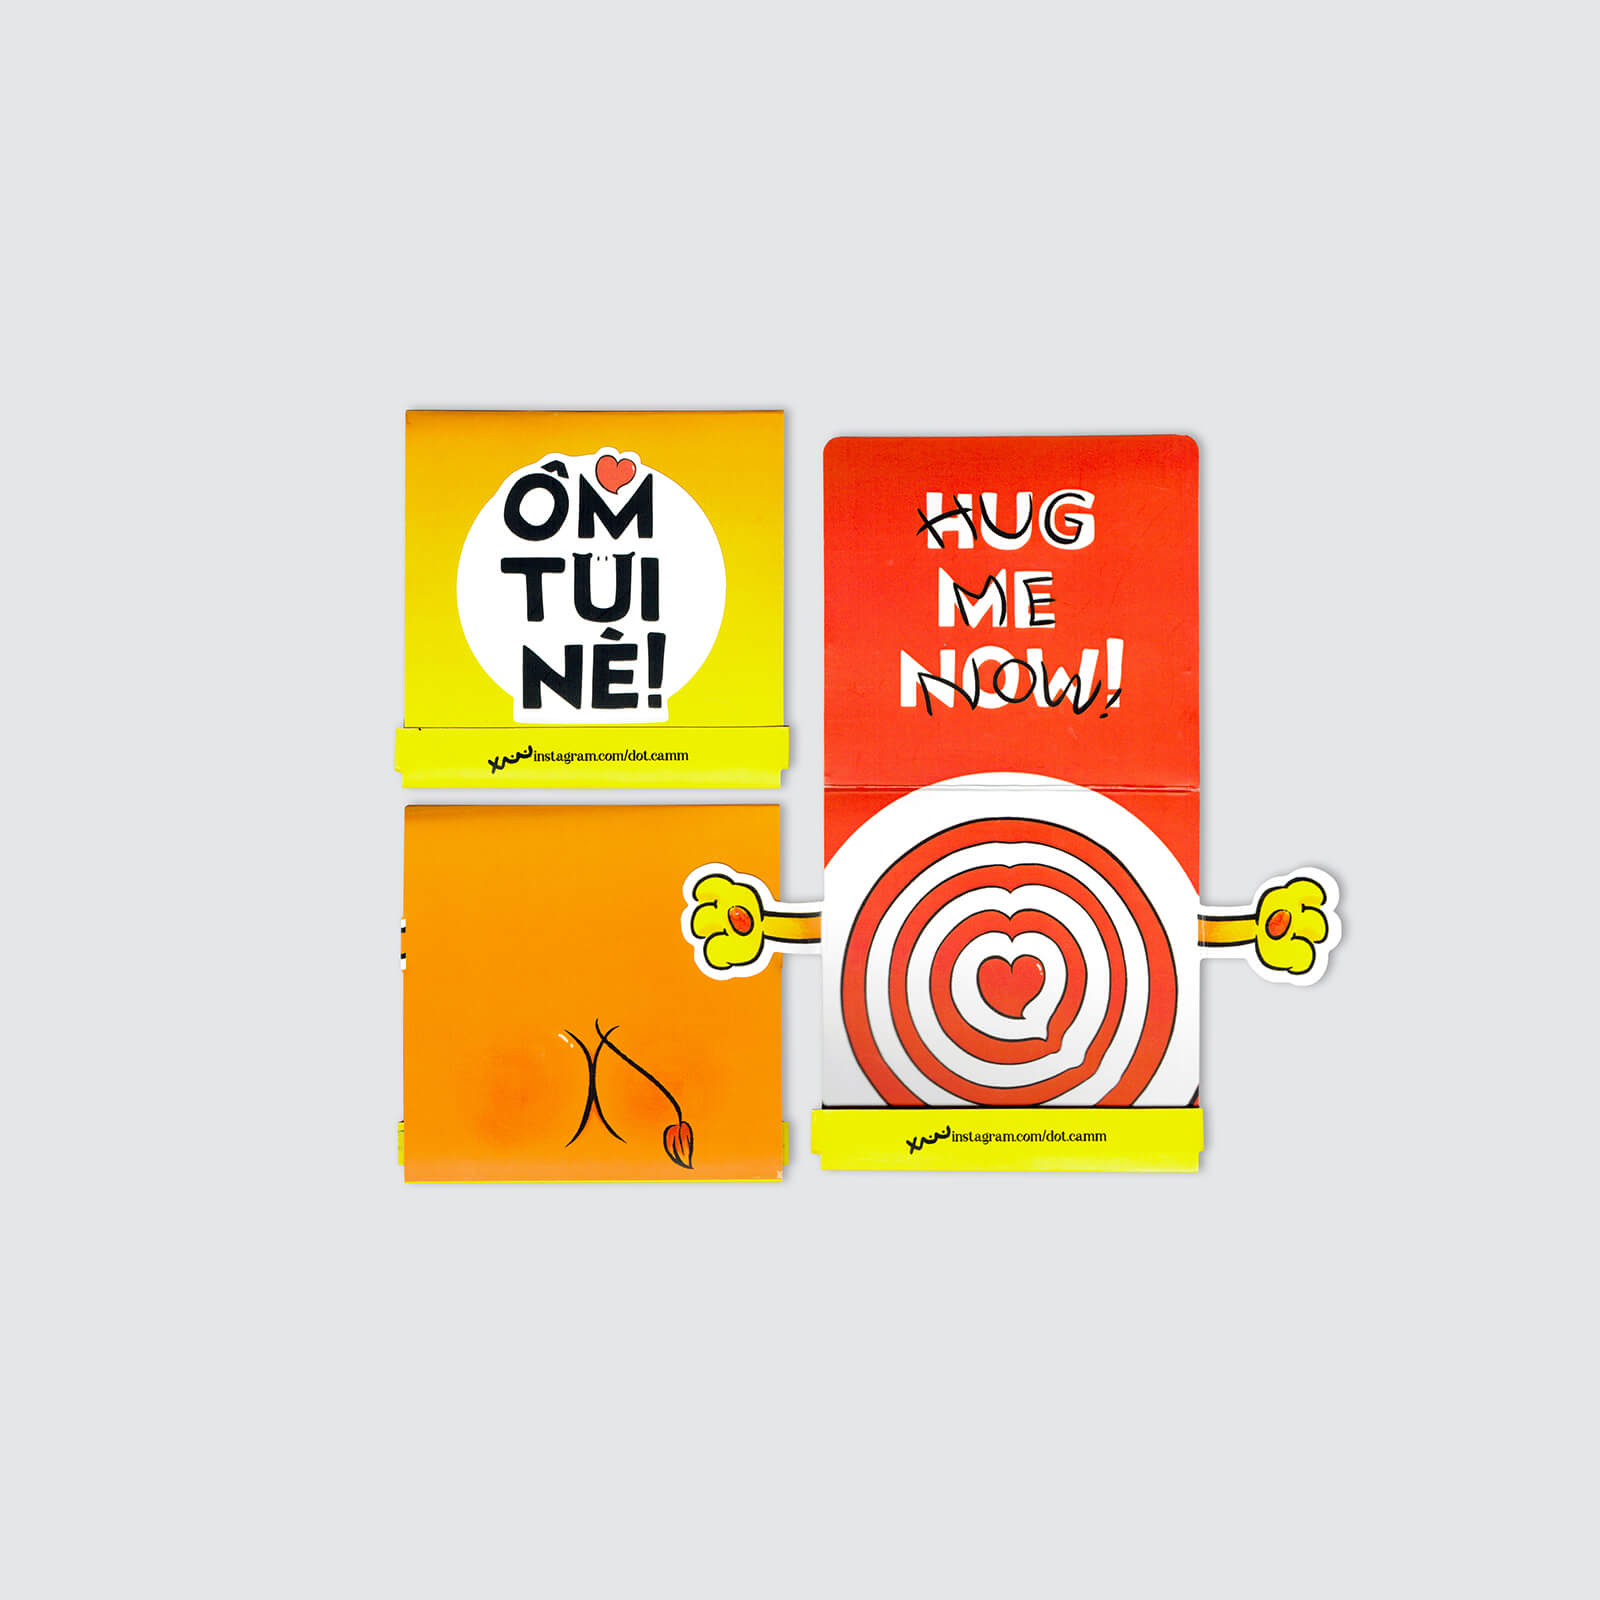 HUG ME NOW! Sticker Pack